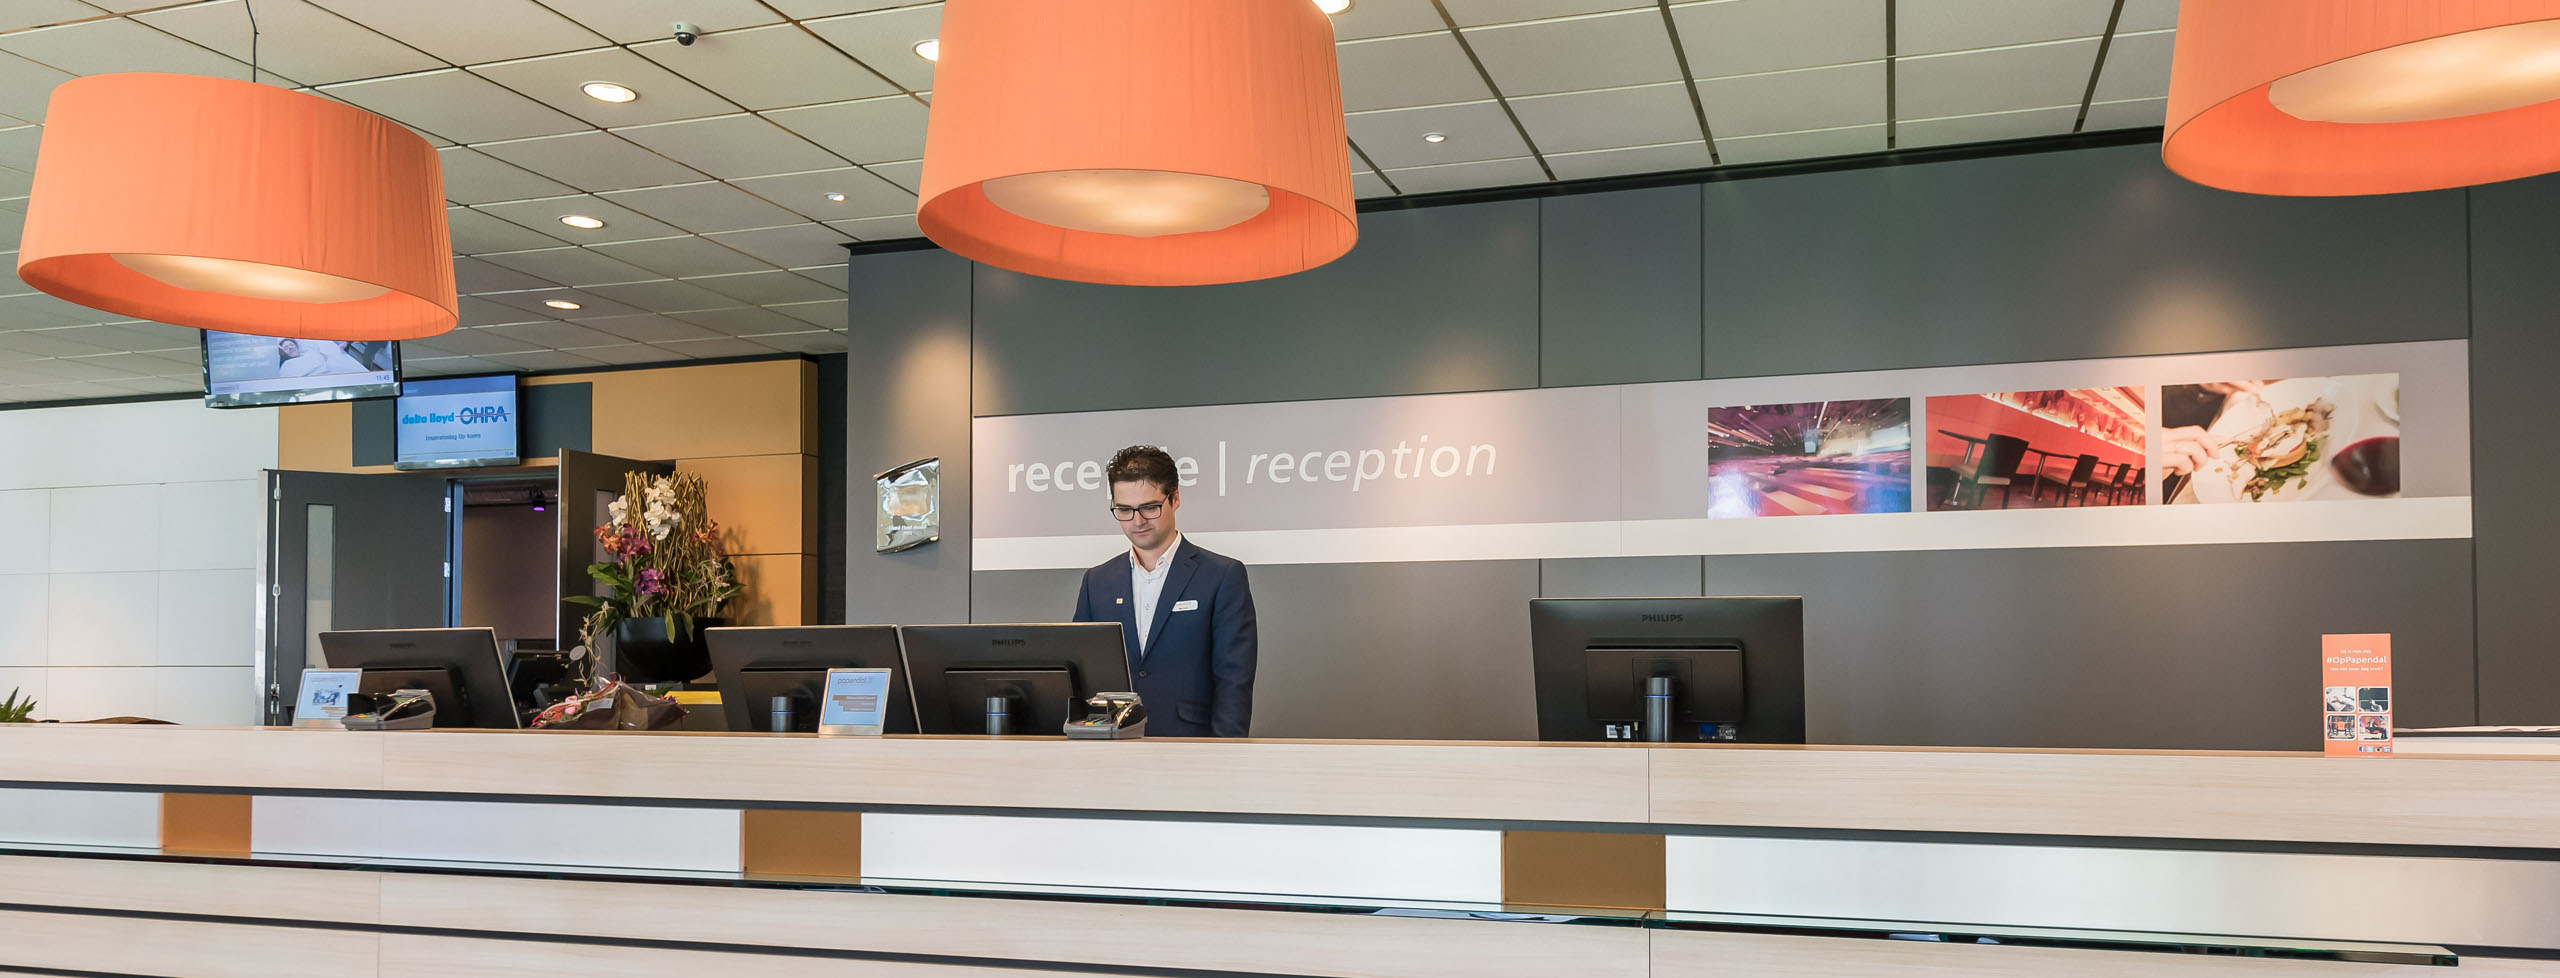 Contact hotel papendal papendal for Contact hotel